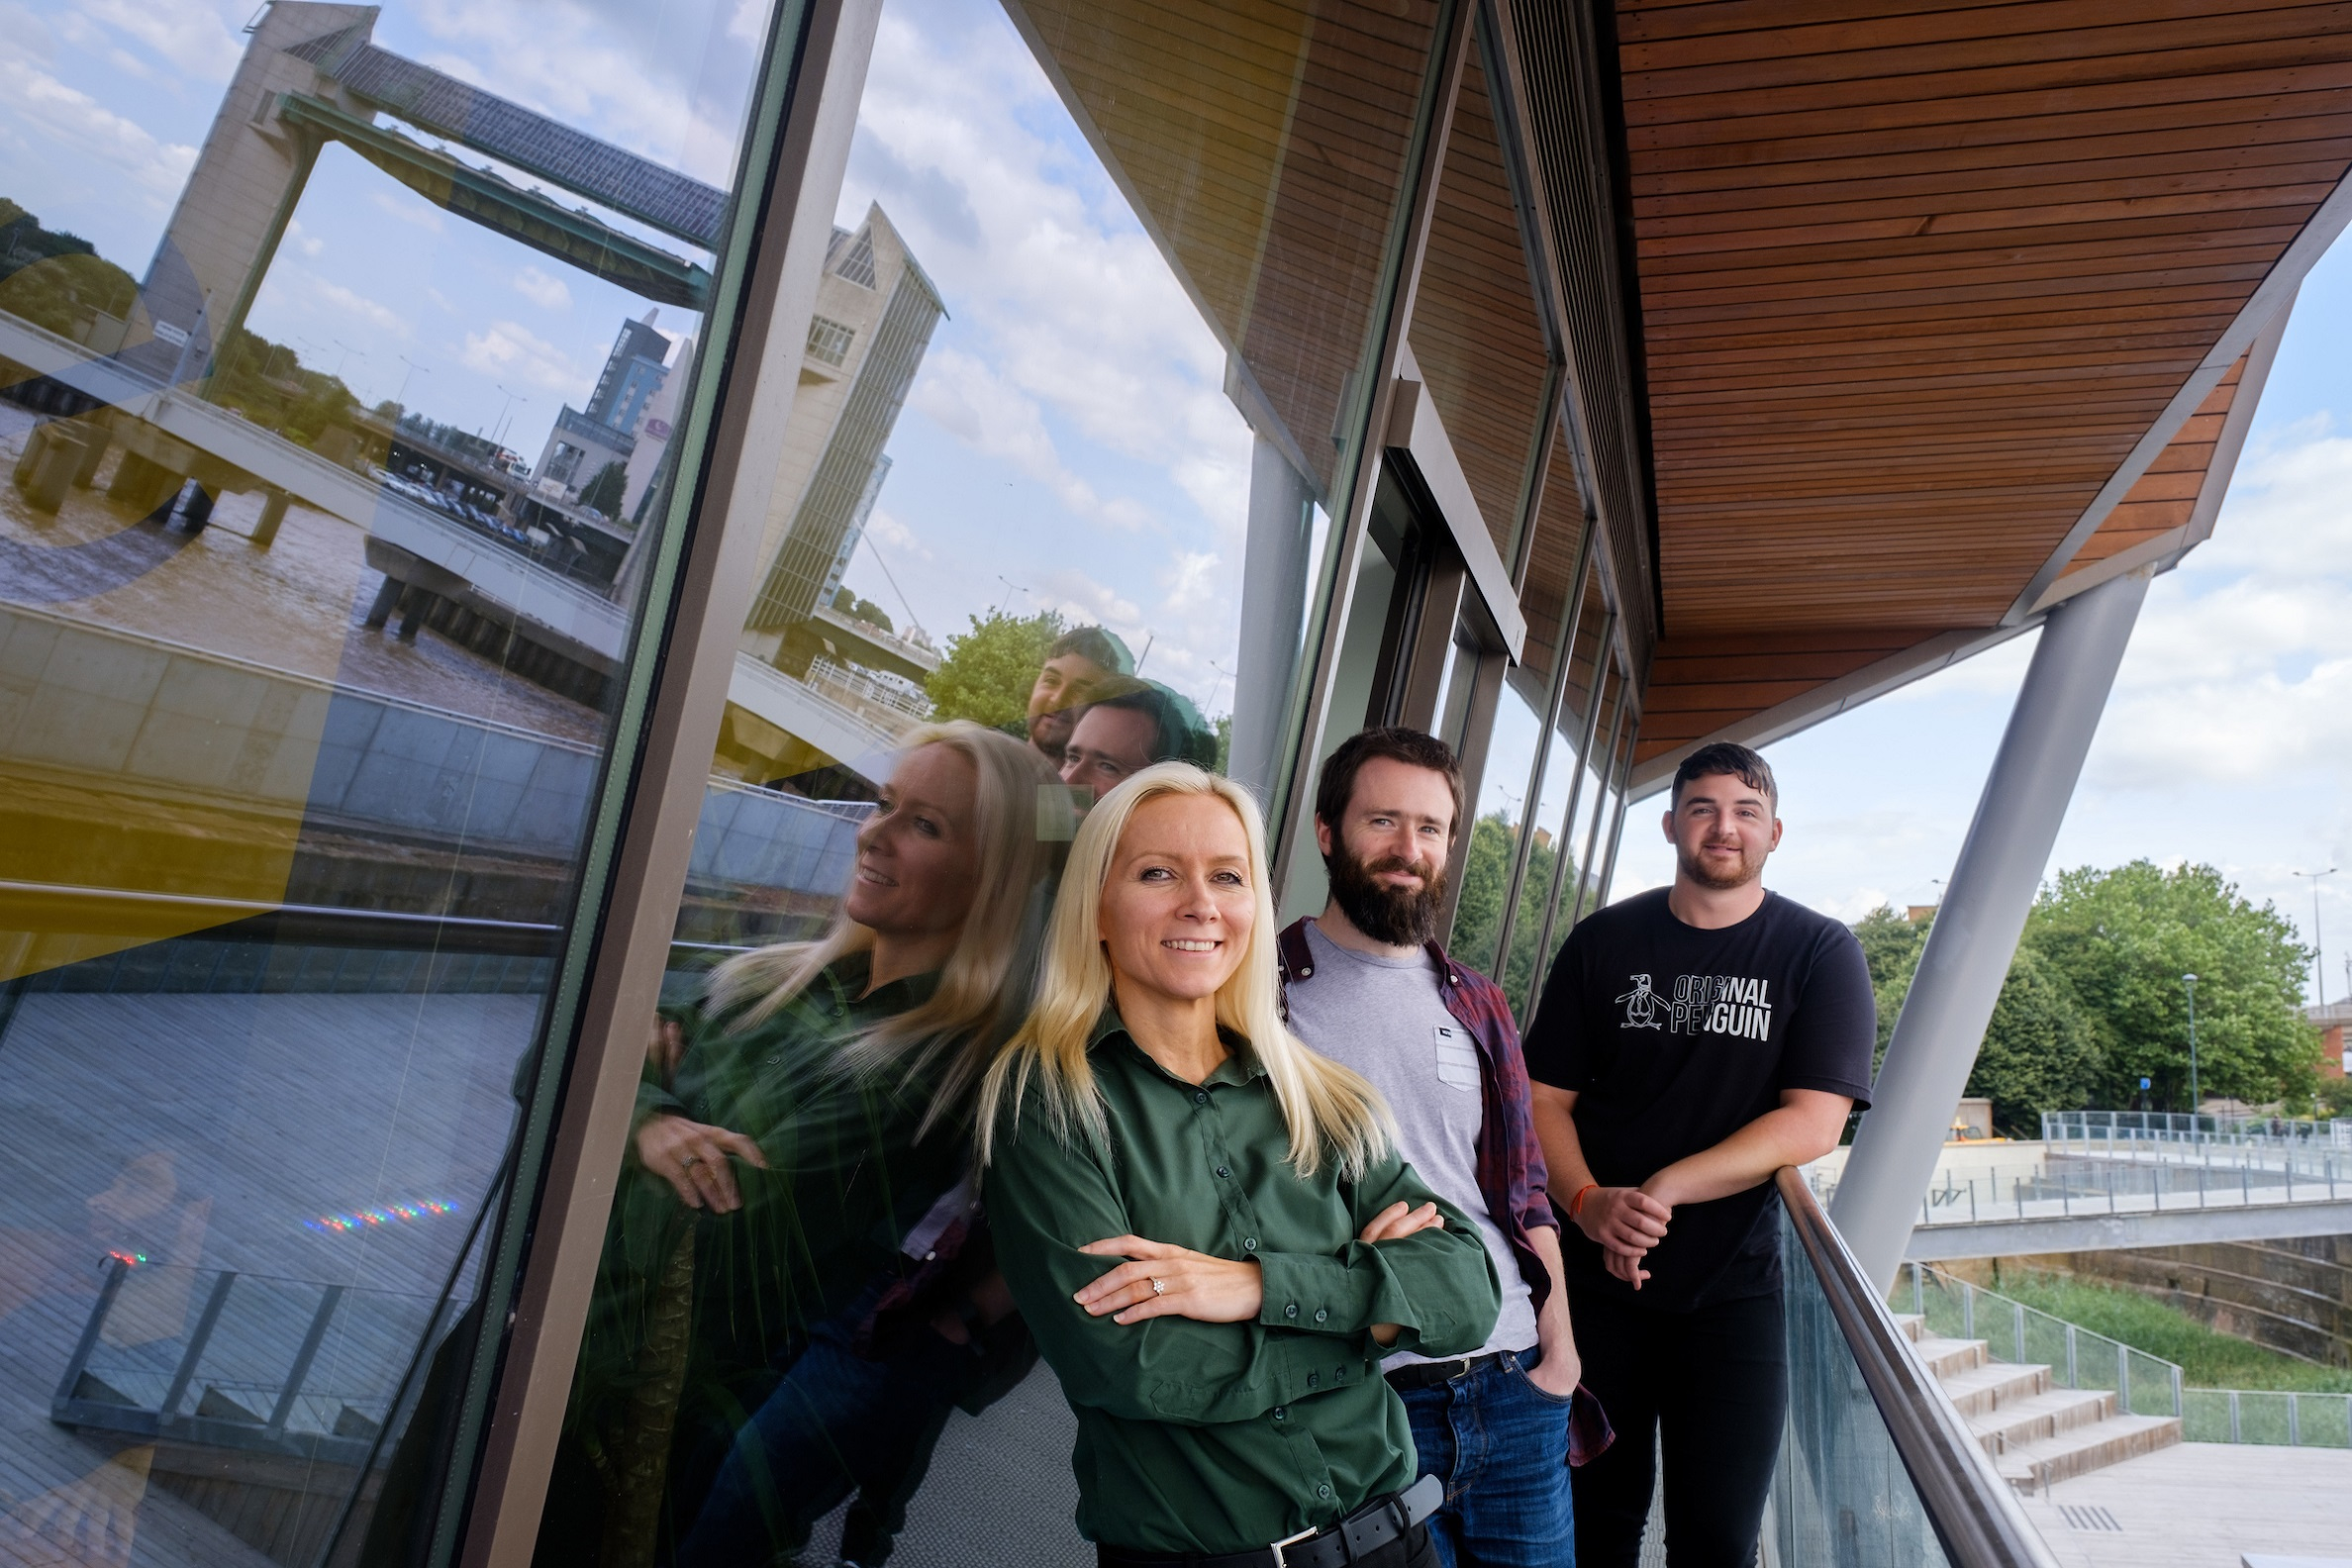 We owe so much to being part of the C4DI community. Pictured here, from left, are Director of Development Claire Clark, Lead Developer Aidan Treasure and Developer Danny Wilkinson on the C4DI balcony – the view's great!